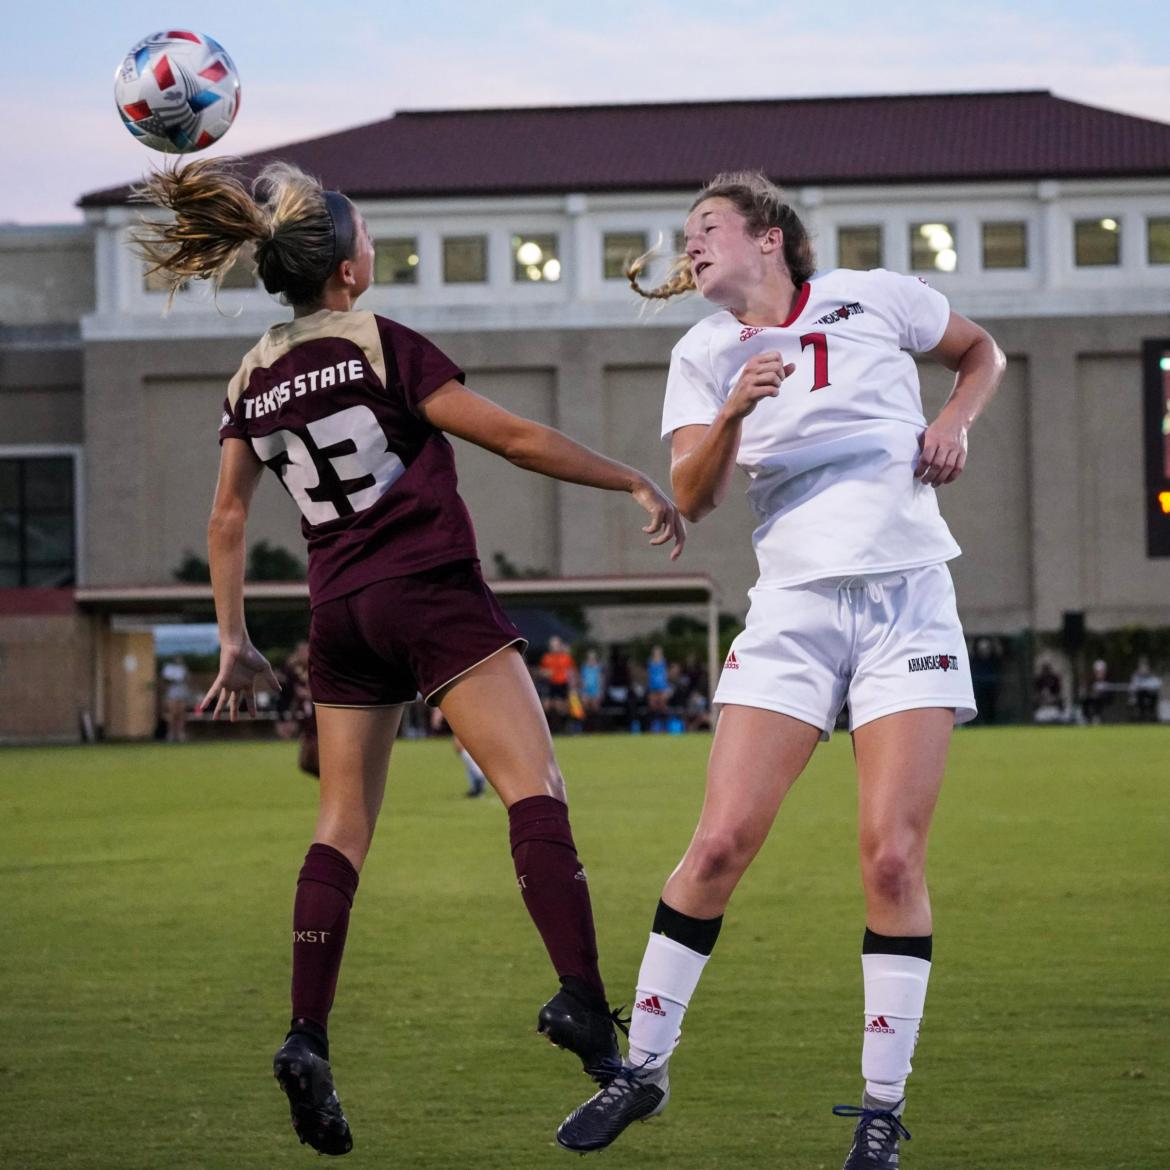 Bobcat player goes up to compete for a header against Arkansas St. Player. (Gabie Jones)